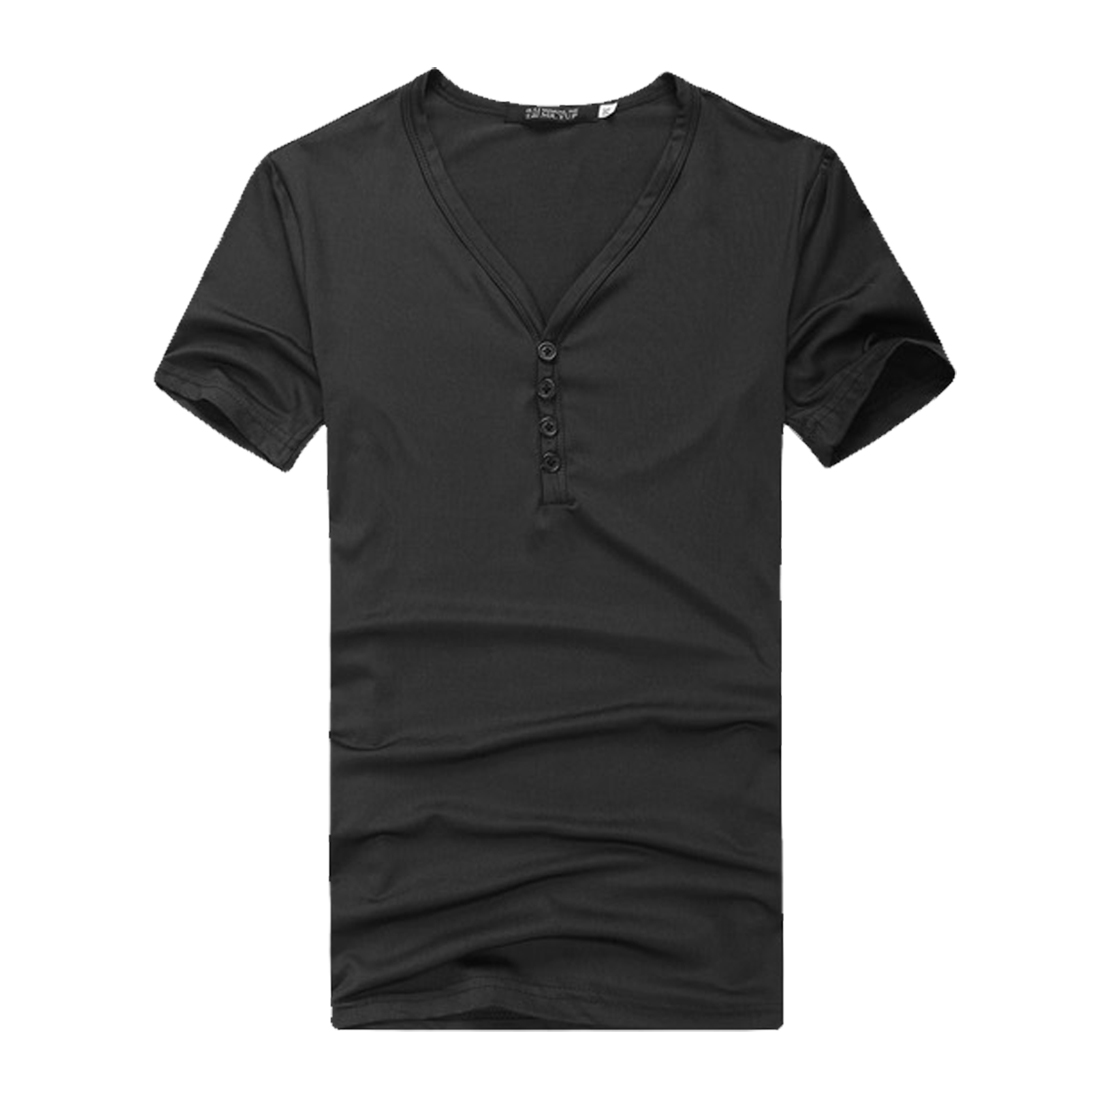 Mens Black V Neck Buttons Top Short Sleeve Stretch Casual Tee Shirt M